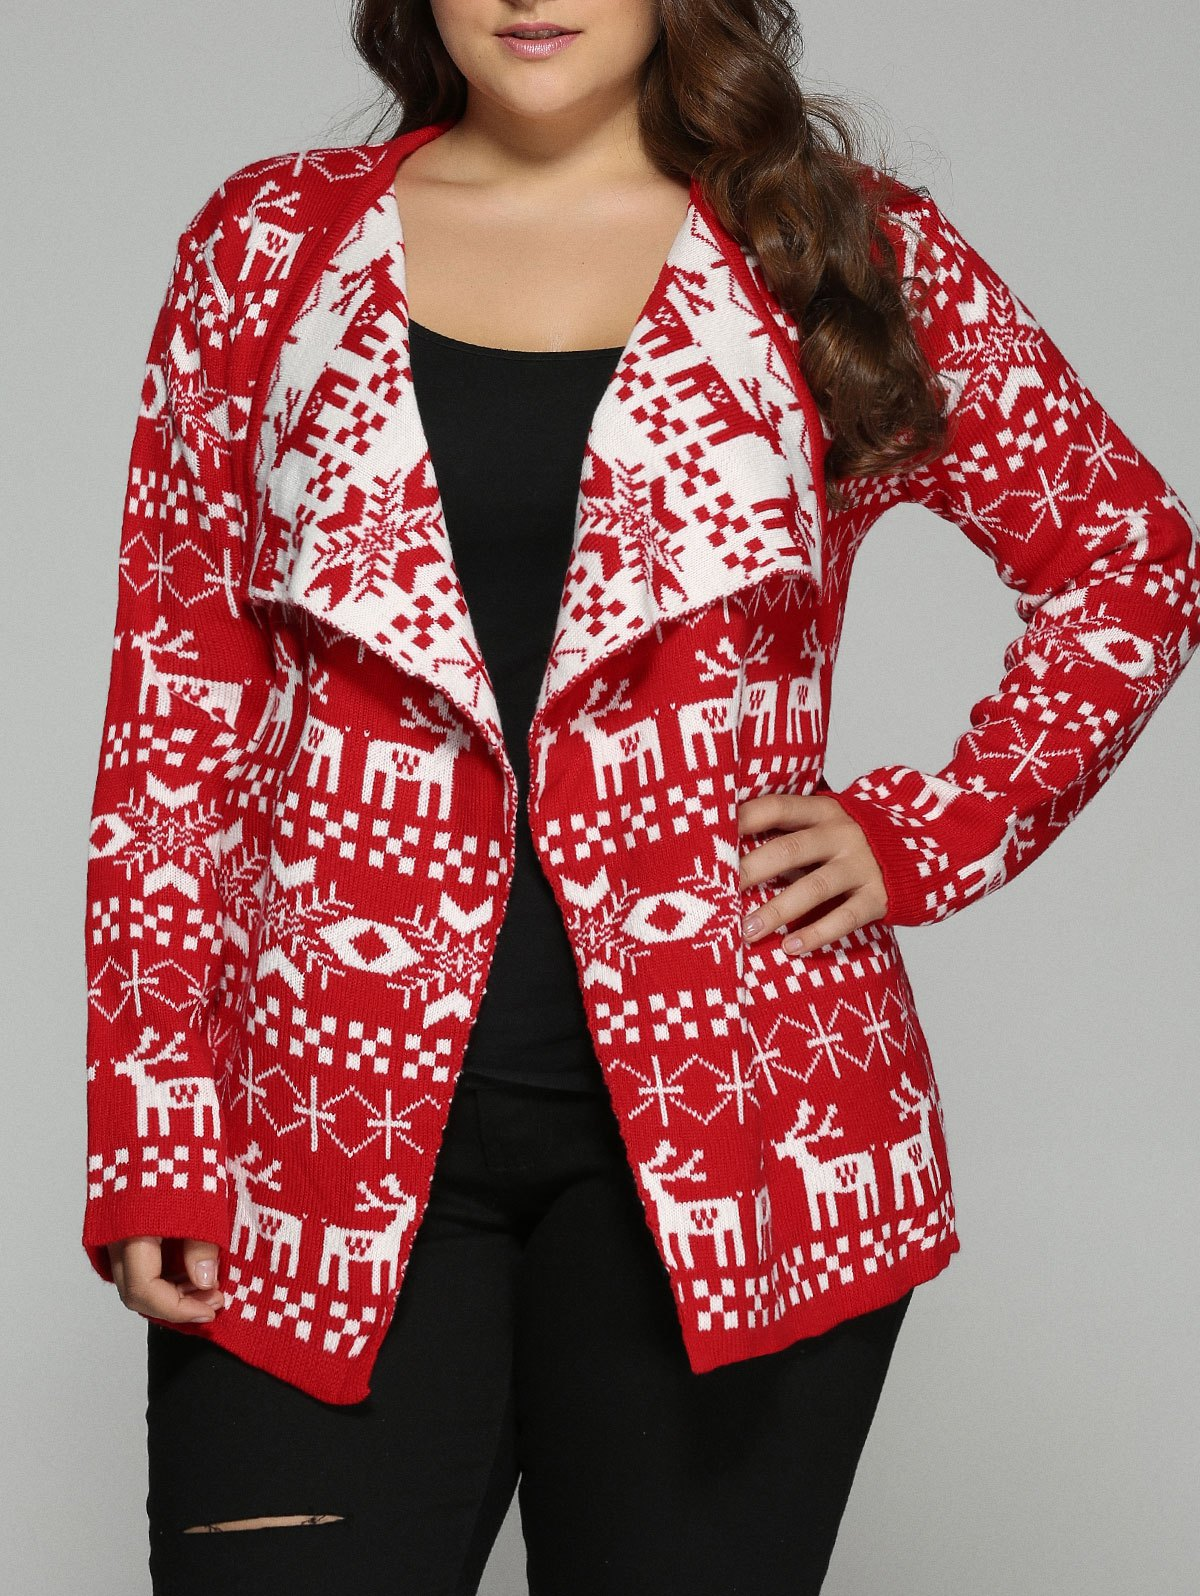 Christmas Jacquard Cute Plus Size CardiganWOMEN<br><br>Size: 3XL; Color: RED; Type: Cardigans; Material: Polyester; Sleeve Length: Full; Collar: Turn-down Collar; Style: Fashion; Season: Fall,Spring; Pattern Type: Character; Weight: 0.475kg; Package Contents: 1 x Cardigan;